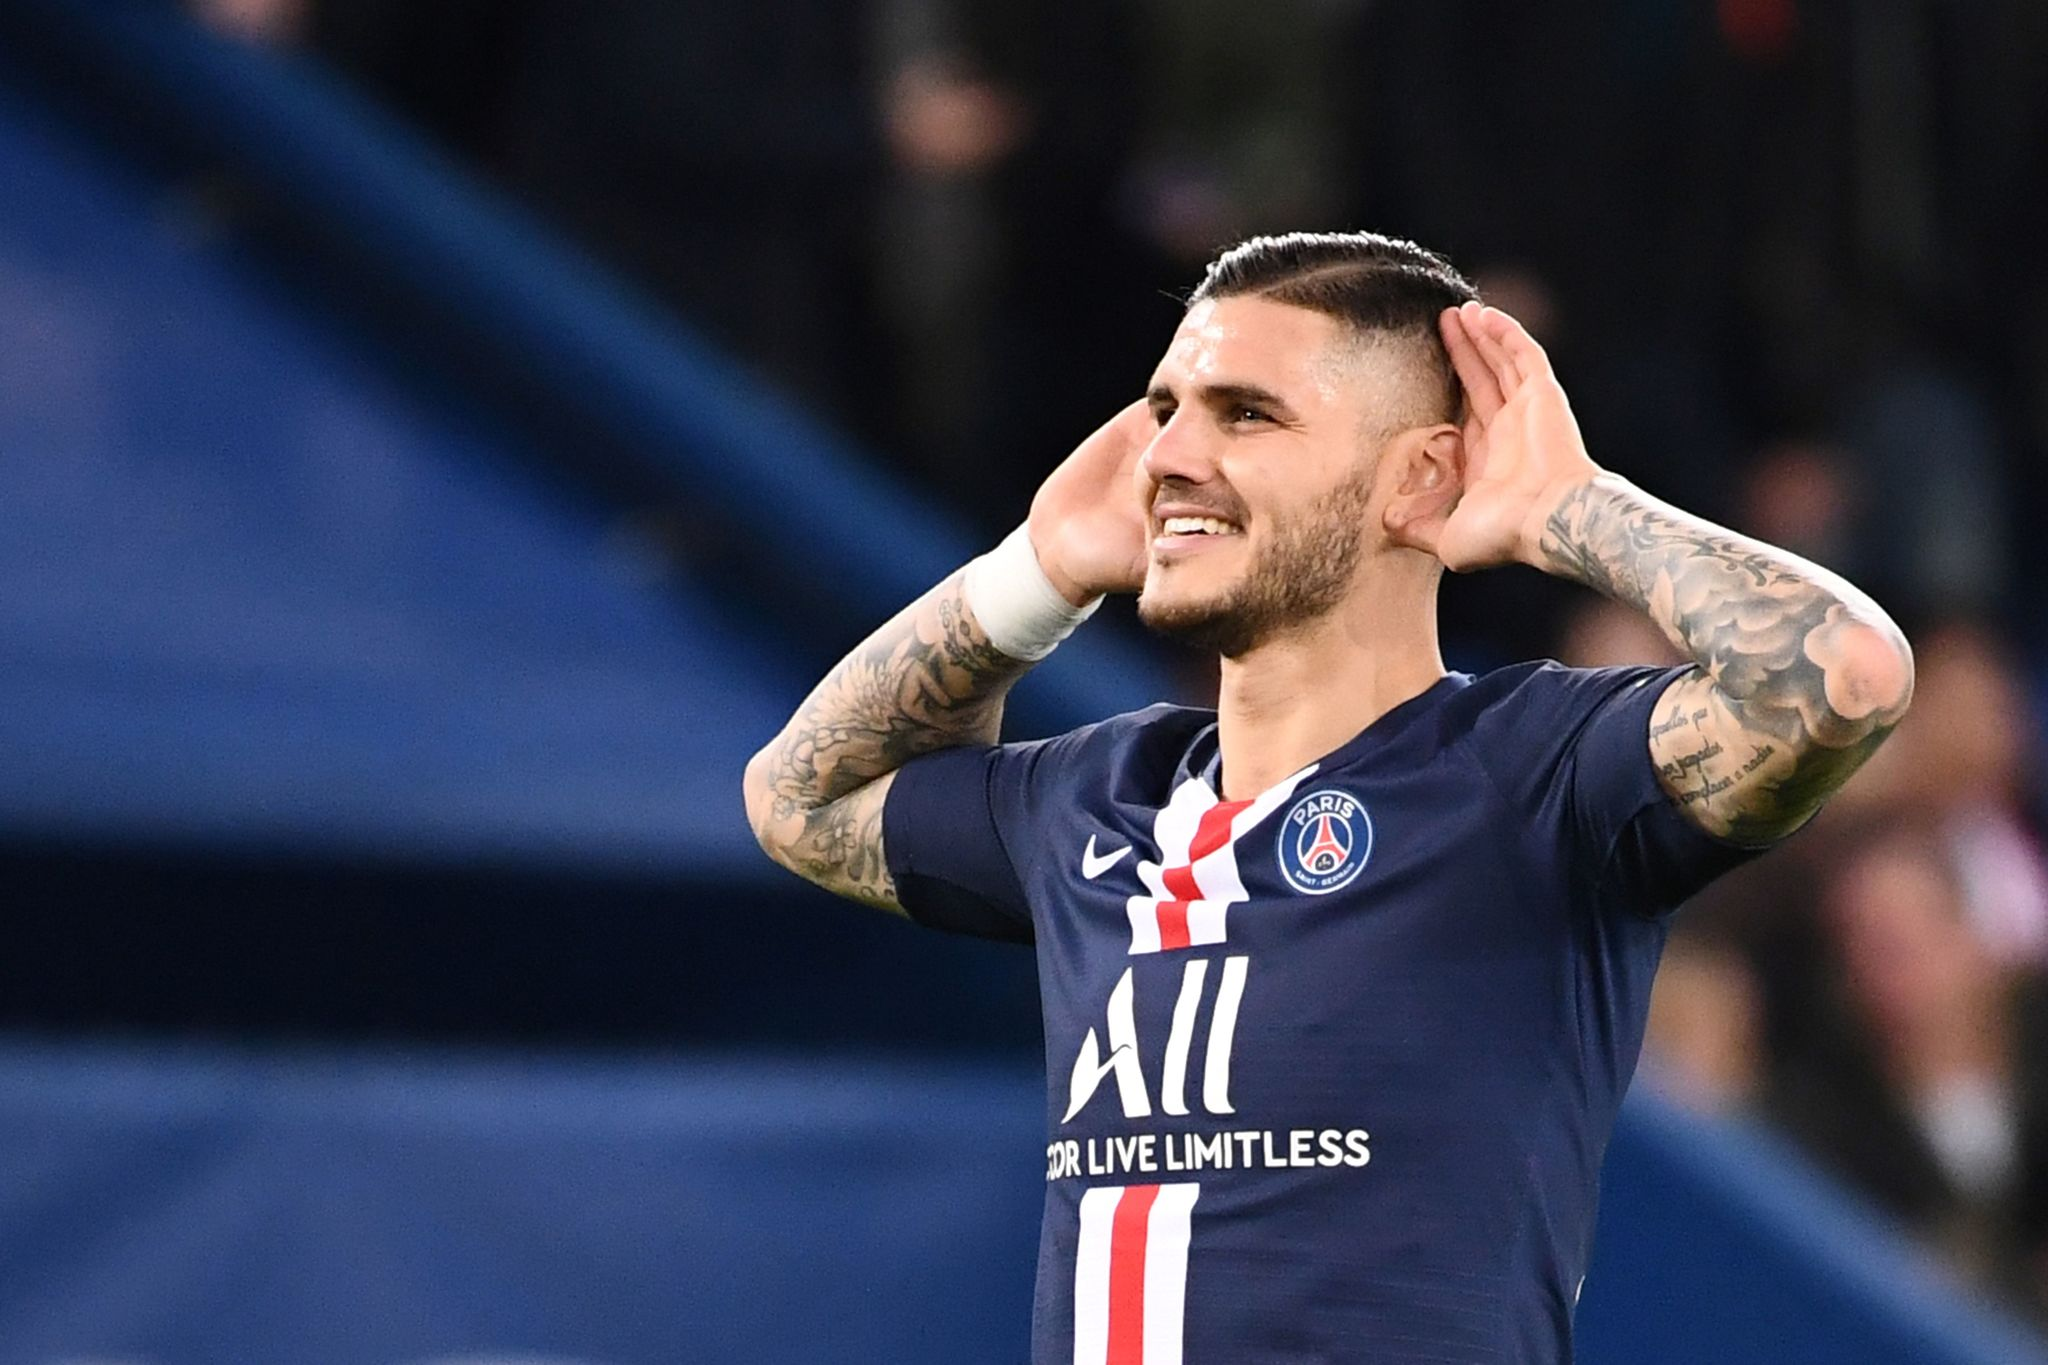 (FILES) In this file photo taken on November 22, 2019 Paris Saint-Germain's Argentine forward Mauro lt;HIT gt;Icardi lt;/HIT gt; celebrates after scoring a goal during the French L1 football match between Paris Saint-Germain (PSG) and Lille (LOSC) at the Parc des Princes in Paris. - Mauro lt;HIT gt;Icardi lt;/HIT gt; remains in Paris. The Argentine striker, on loan since the start of the 2019-20 season from Inter Milan, has signed a 4-year contract until 2024 with the Parisian club, Paris Saint-Germain announced on May 31, 2020. (Photo by FRANCK FIFE / AFP)